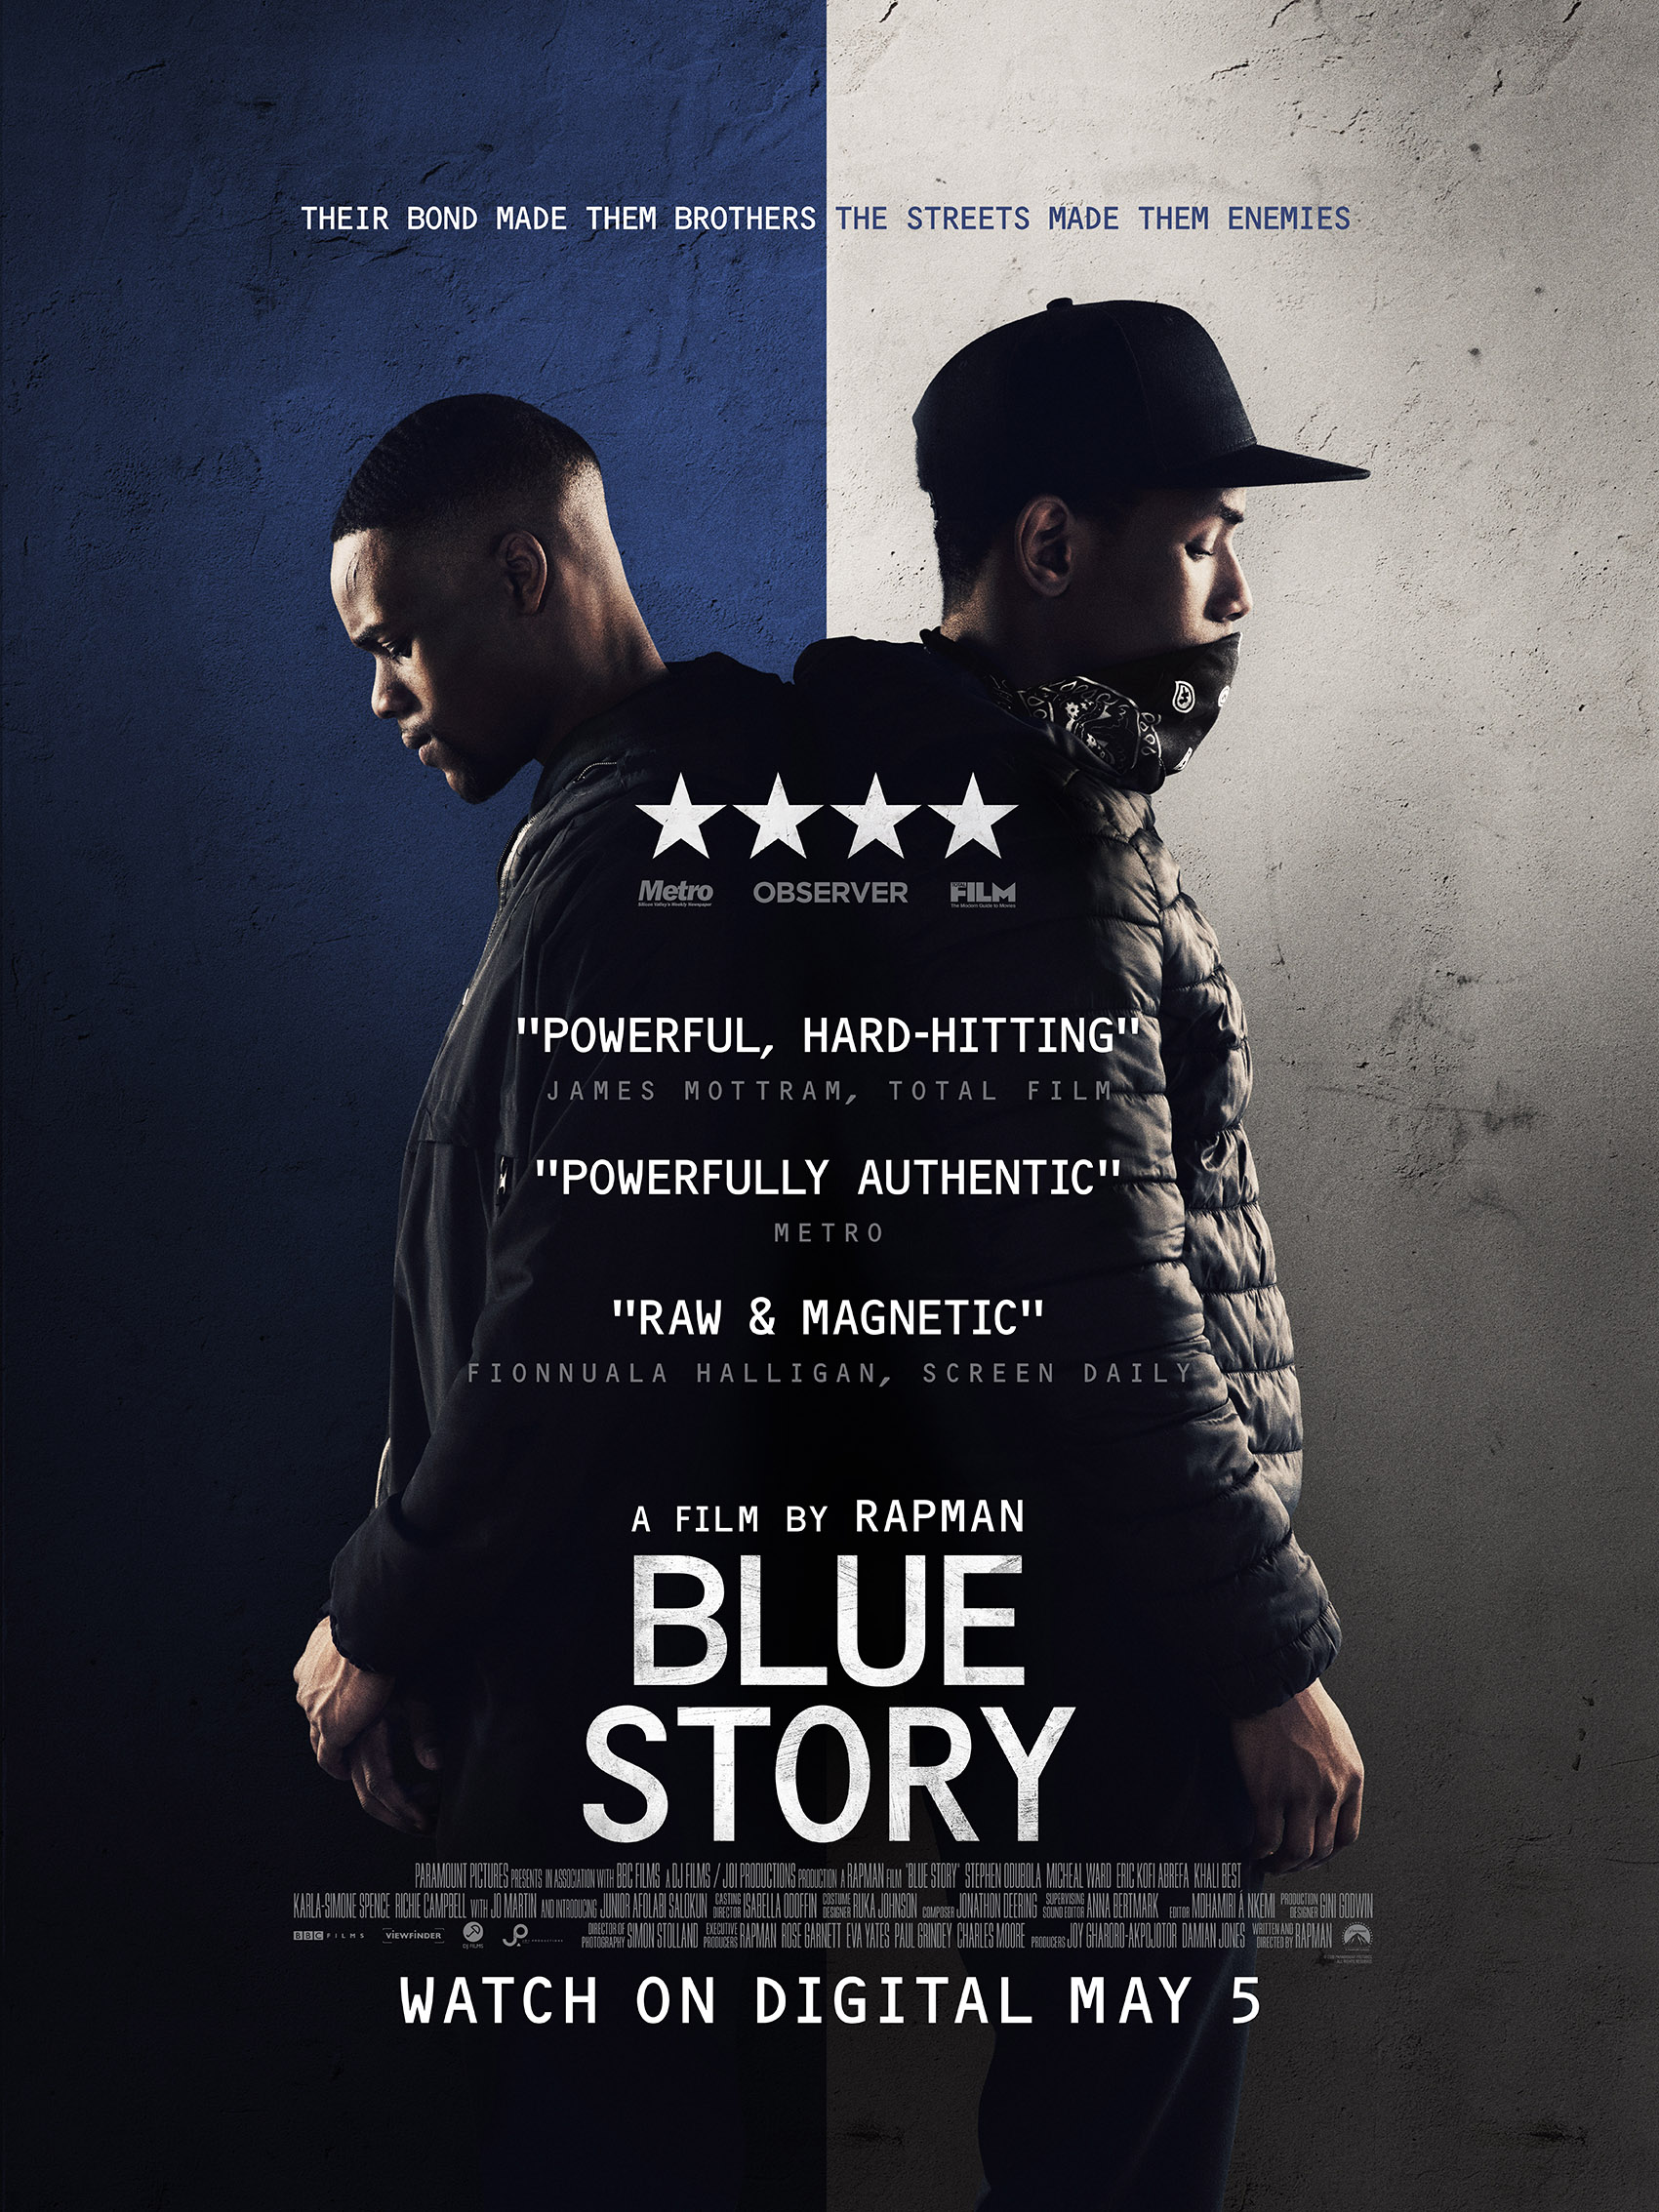 New Film: Blue Story Starring Stephen Odubola, Micheal Ward